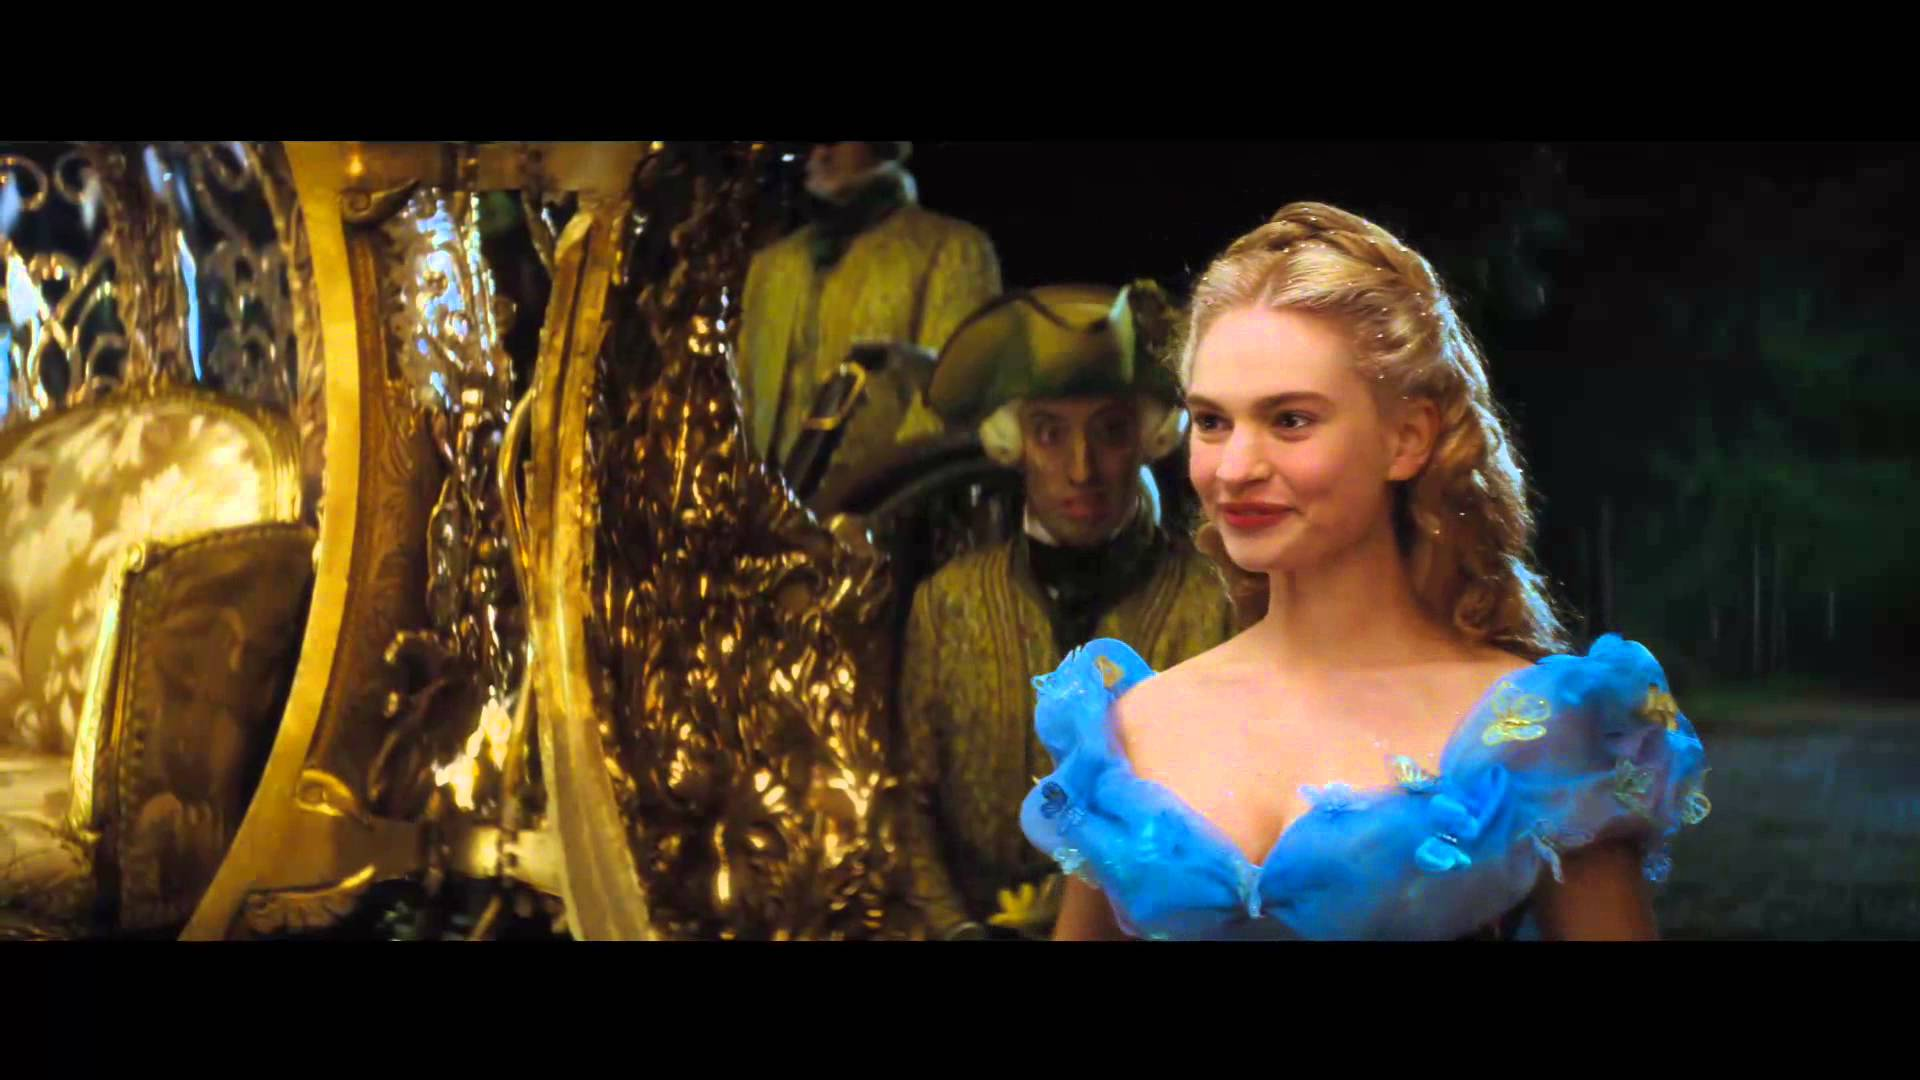 「經典童話重現──仙履奇緣」- Disney's Cinderella Official US Trailer